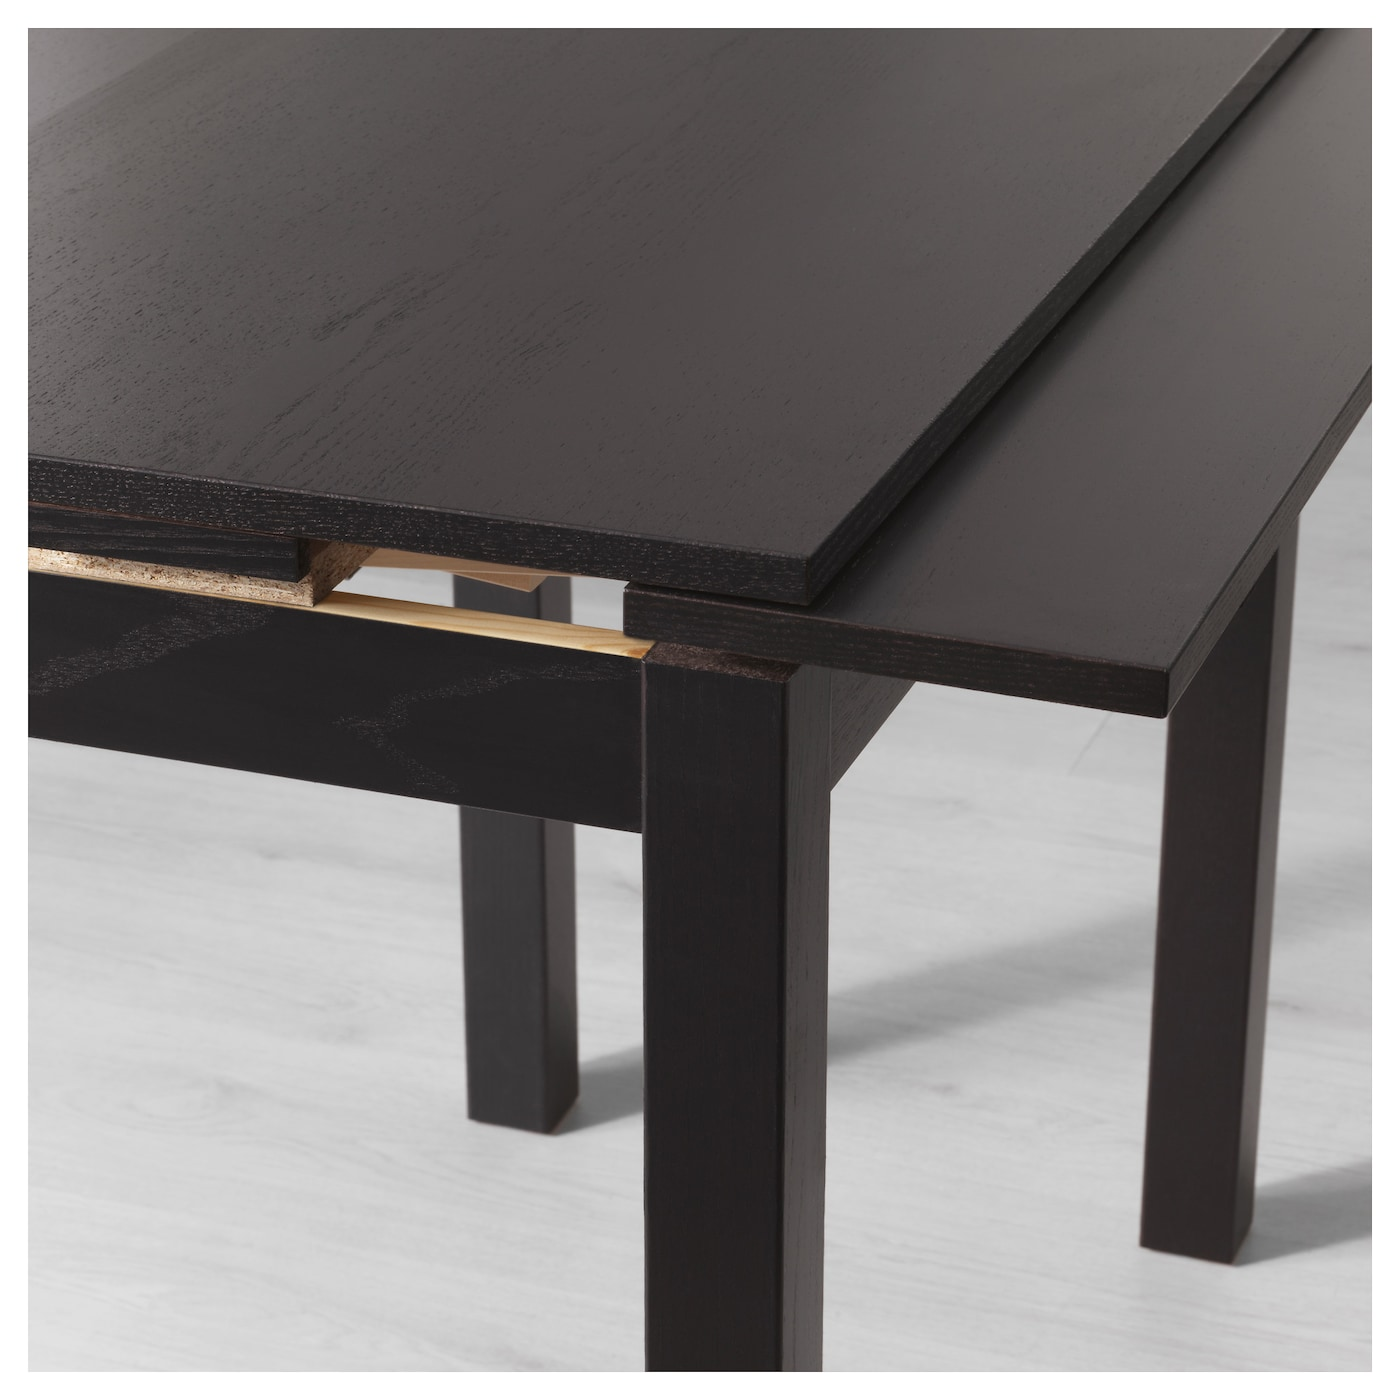 Bjursta extendable table brown black 50 70 90x90 cm ikea for Table extensible 90x90